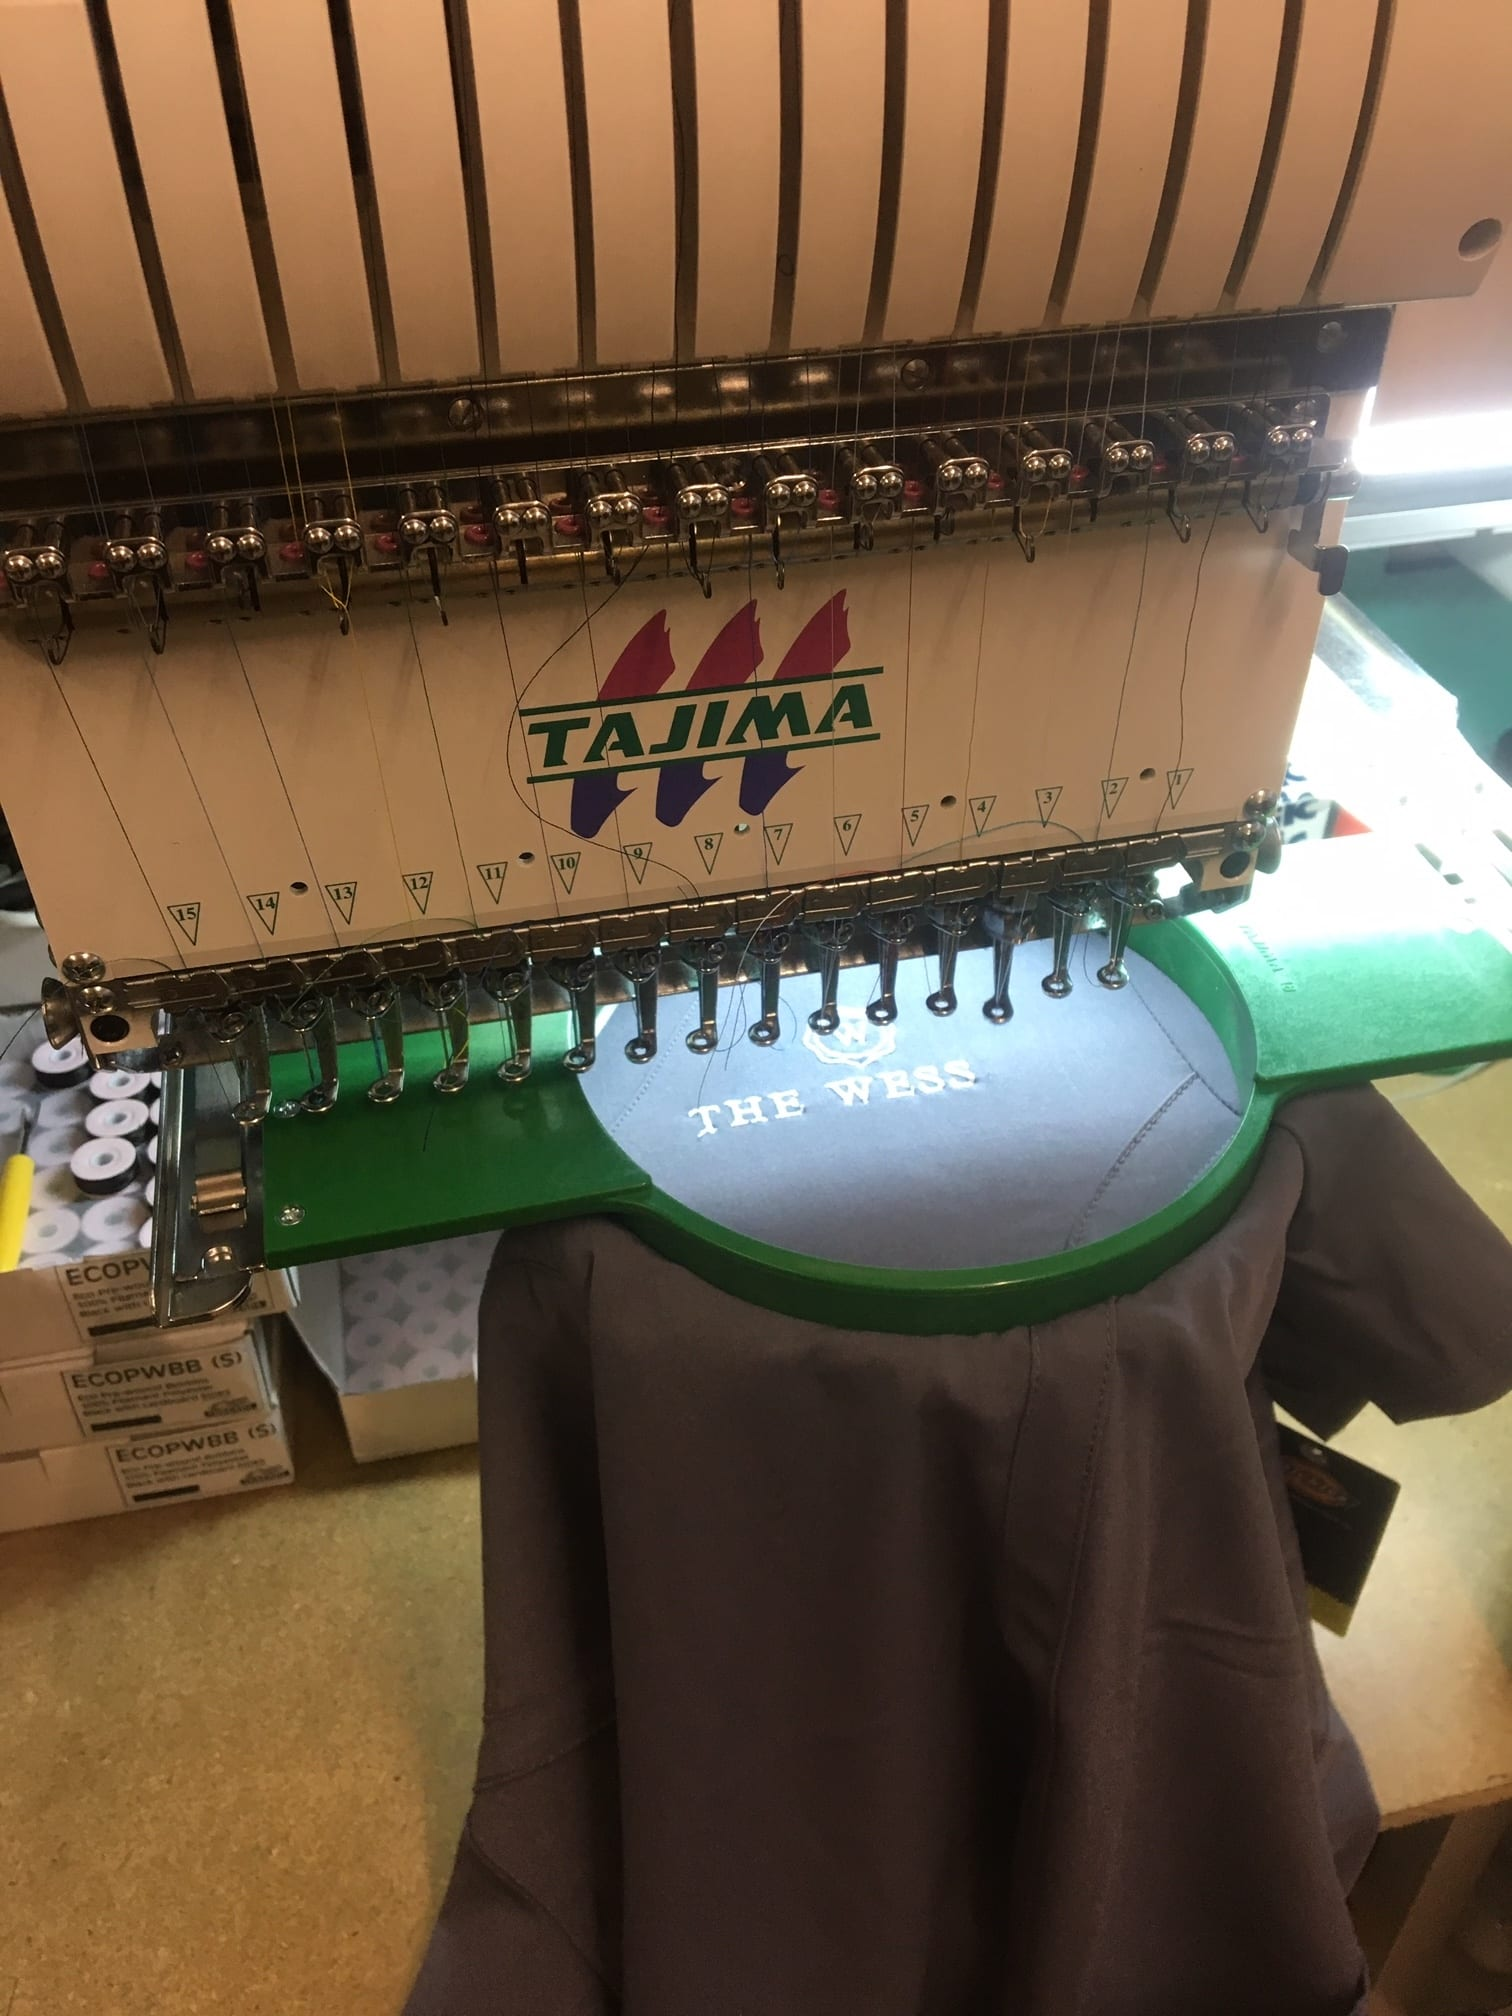 Embroidery in action